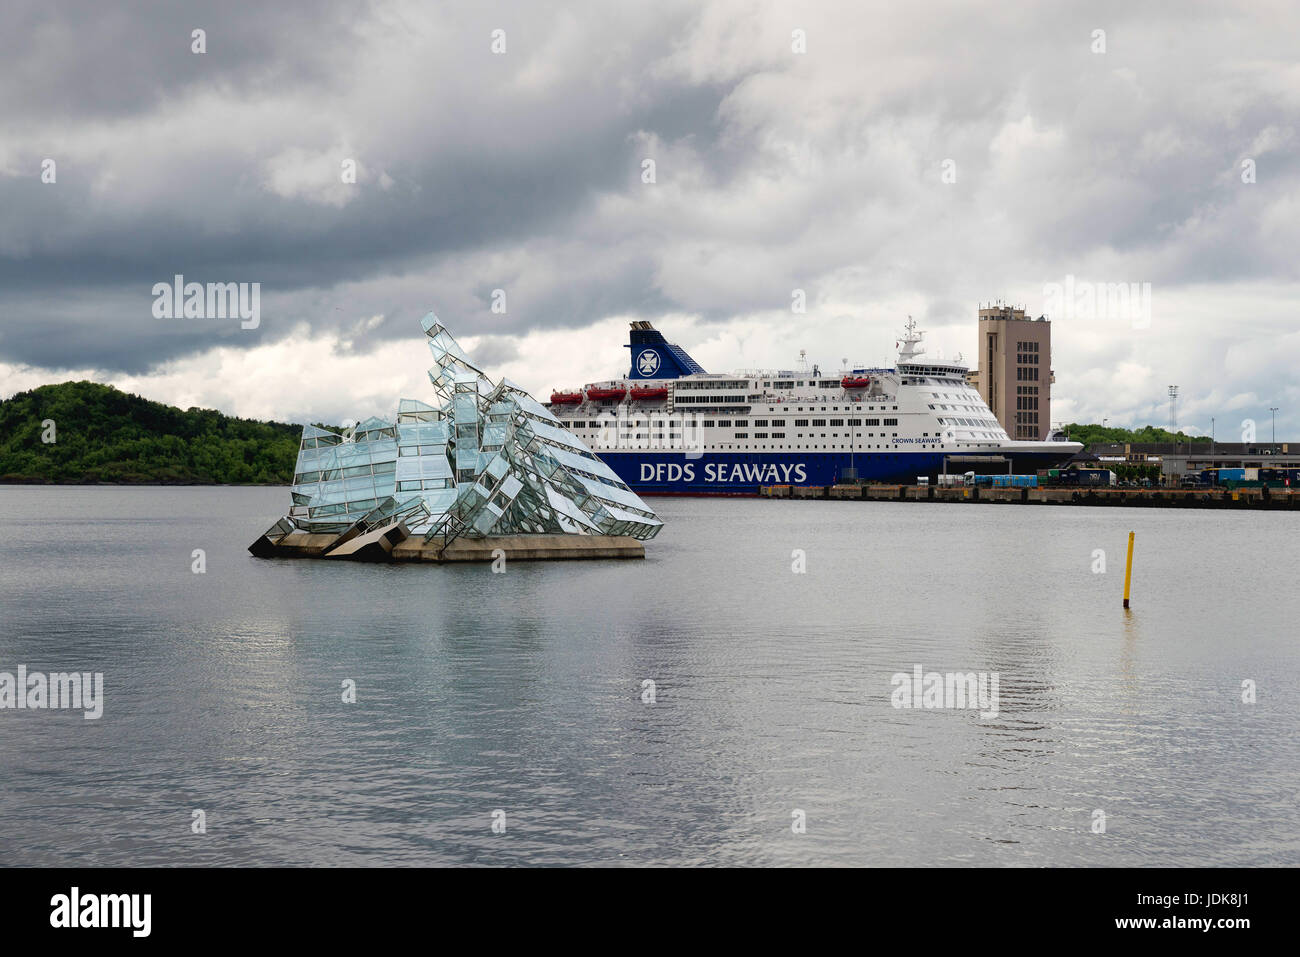 oslo, norway - june 8, 2017: the floating sculpture in front of